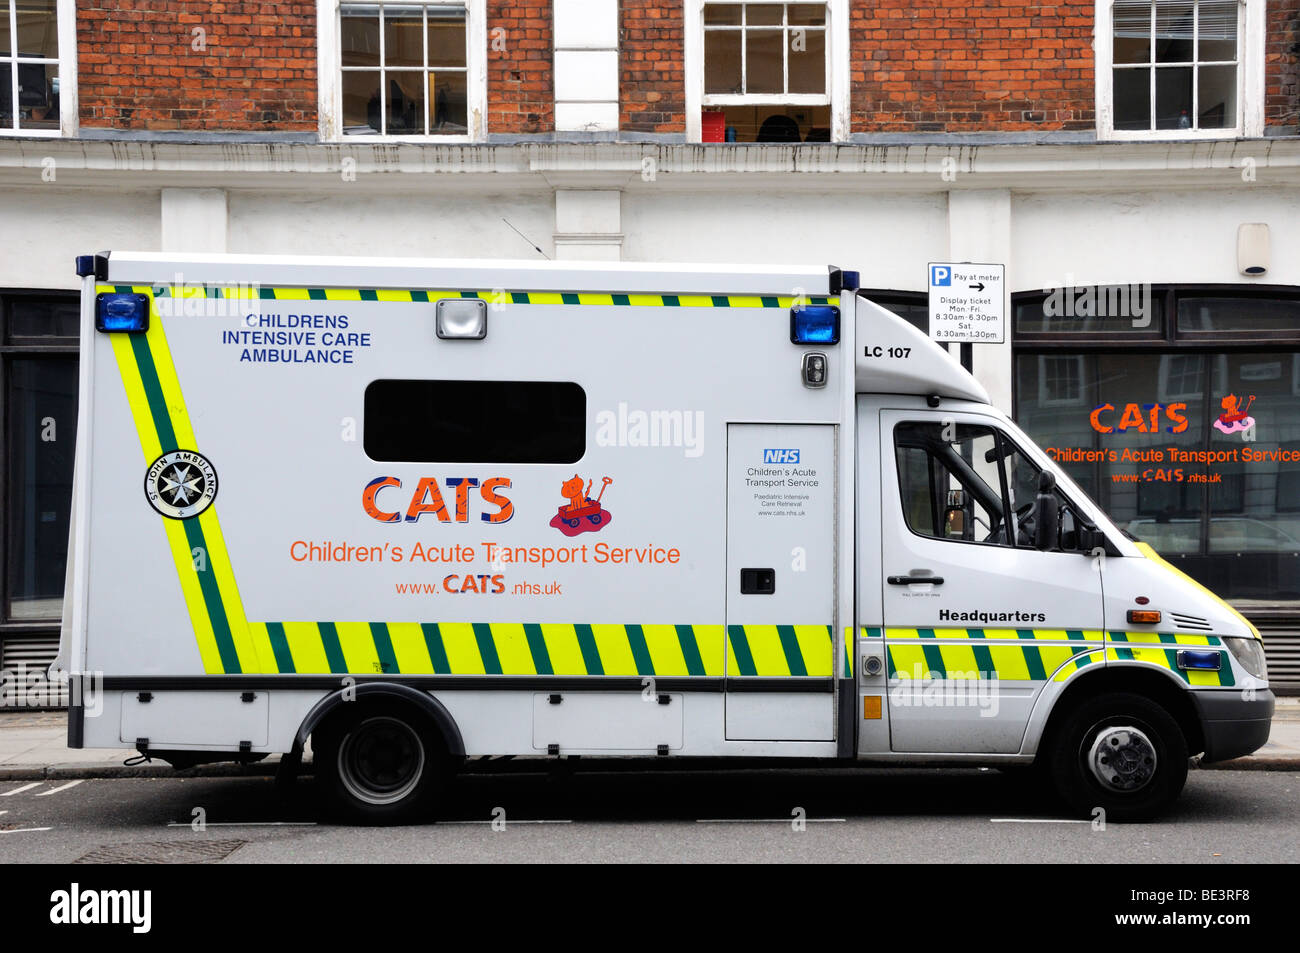 Children's Acute Transport Service outside CATS office London England UK - Stock Image